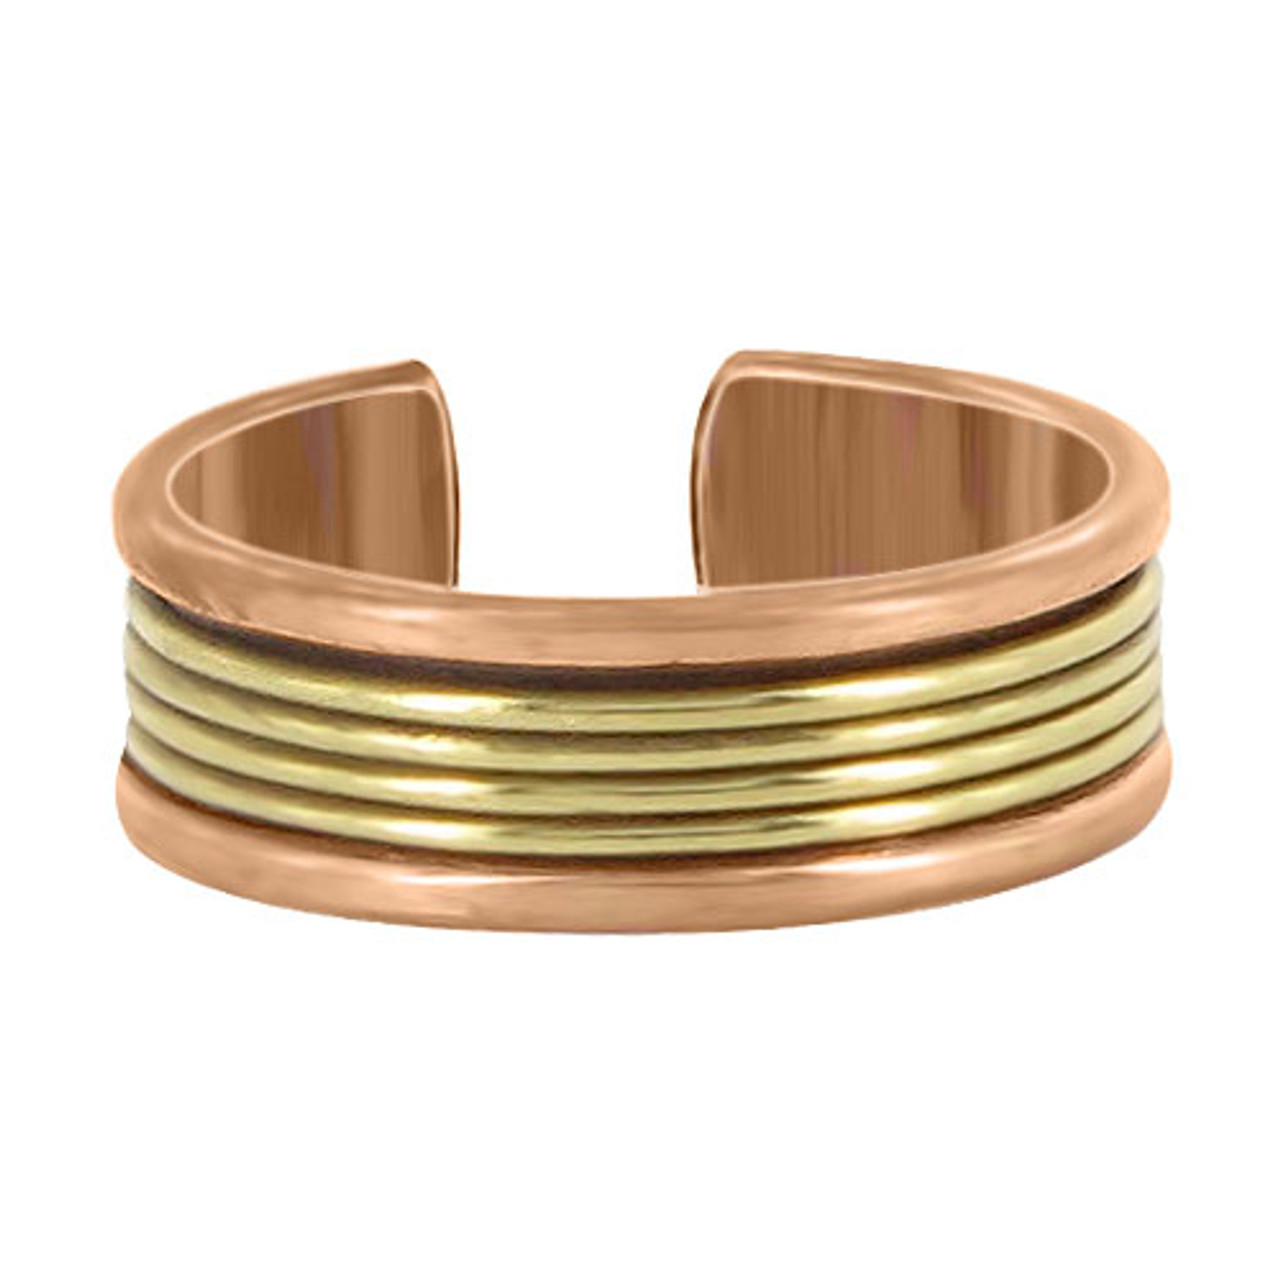 8mm wide Two Tone Finish Adjustable Fashion Ring